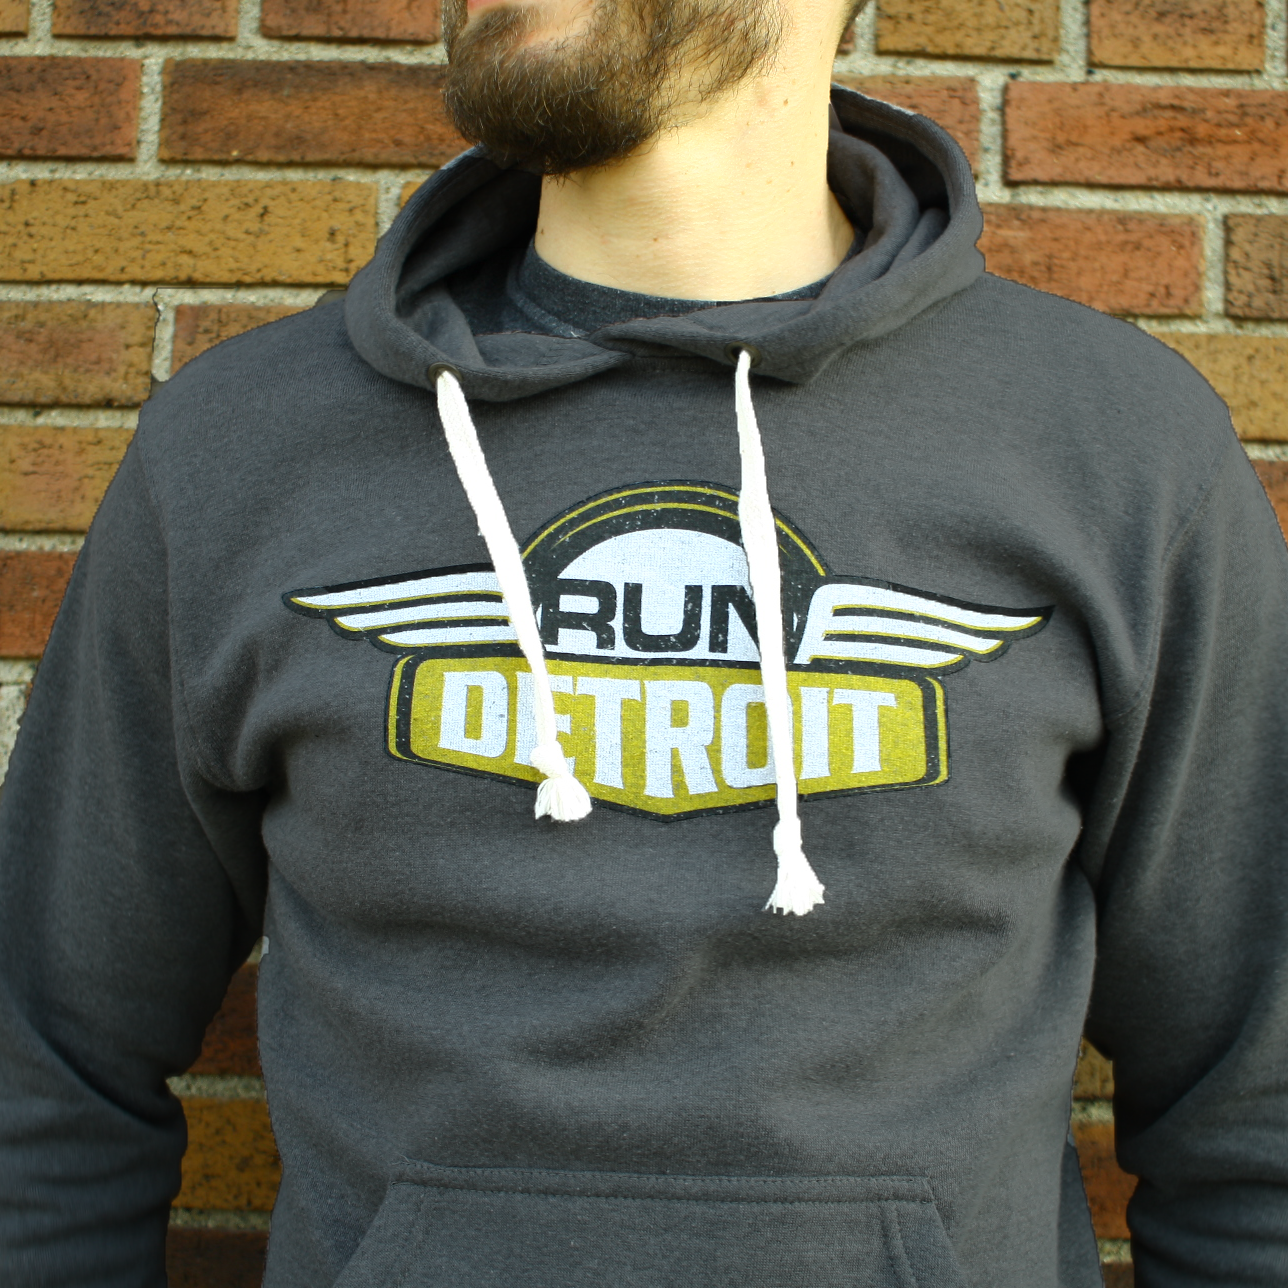 Unisex Triblend Pullover Fleece Hoodie Sweatshirt with distressed RUNdetroit logo screen printed on chest